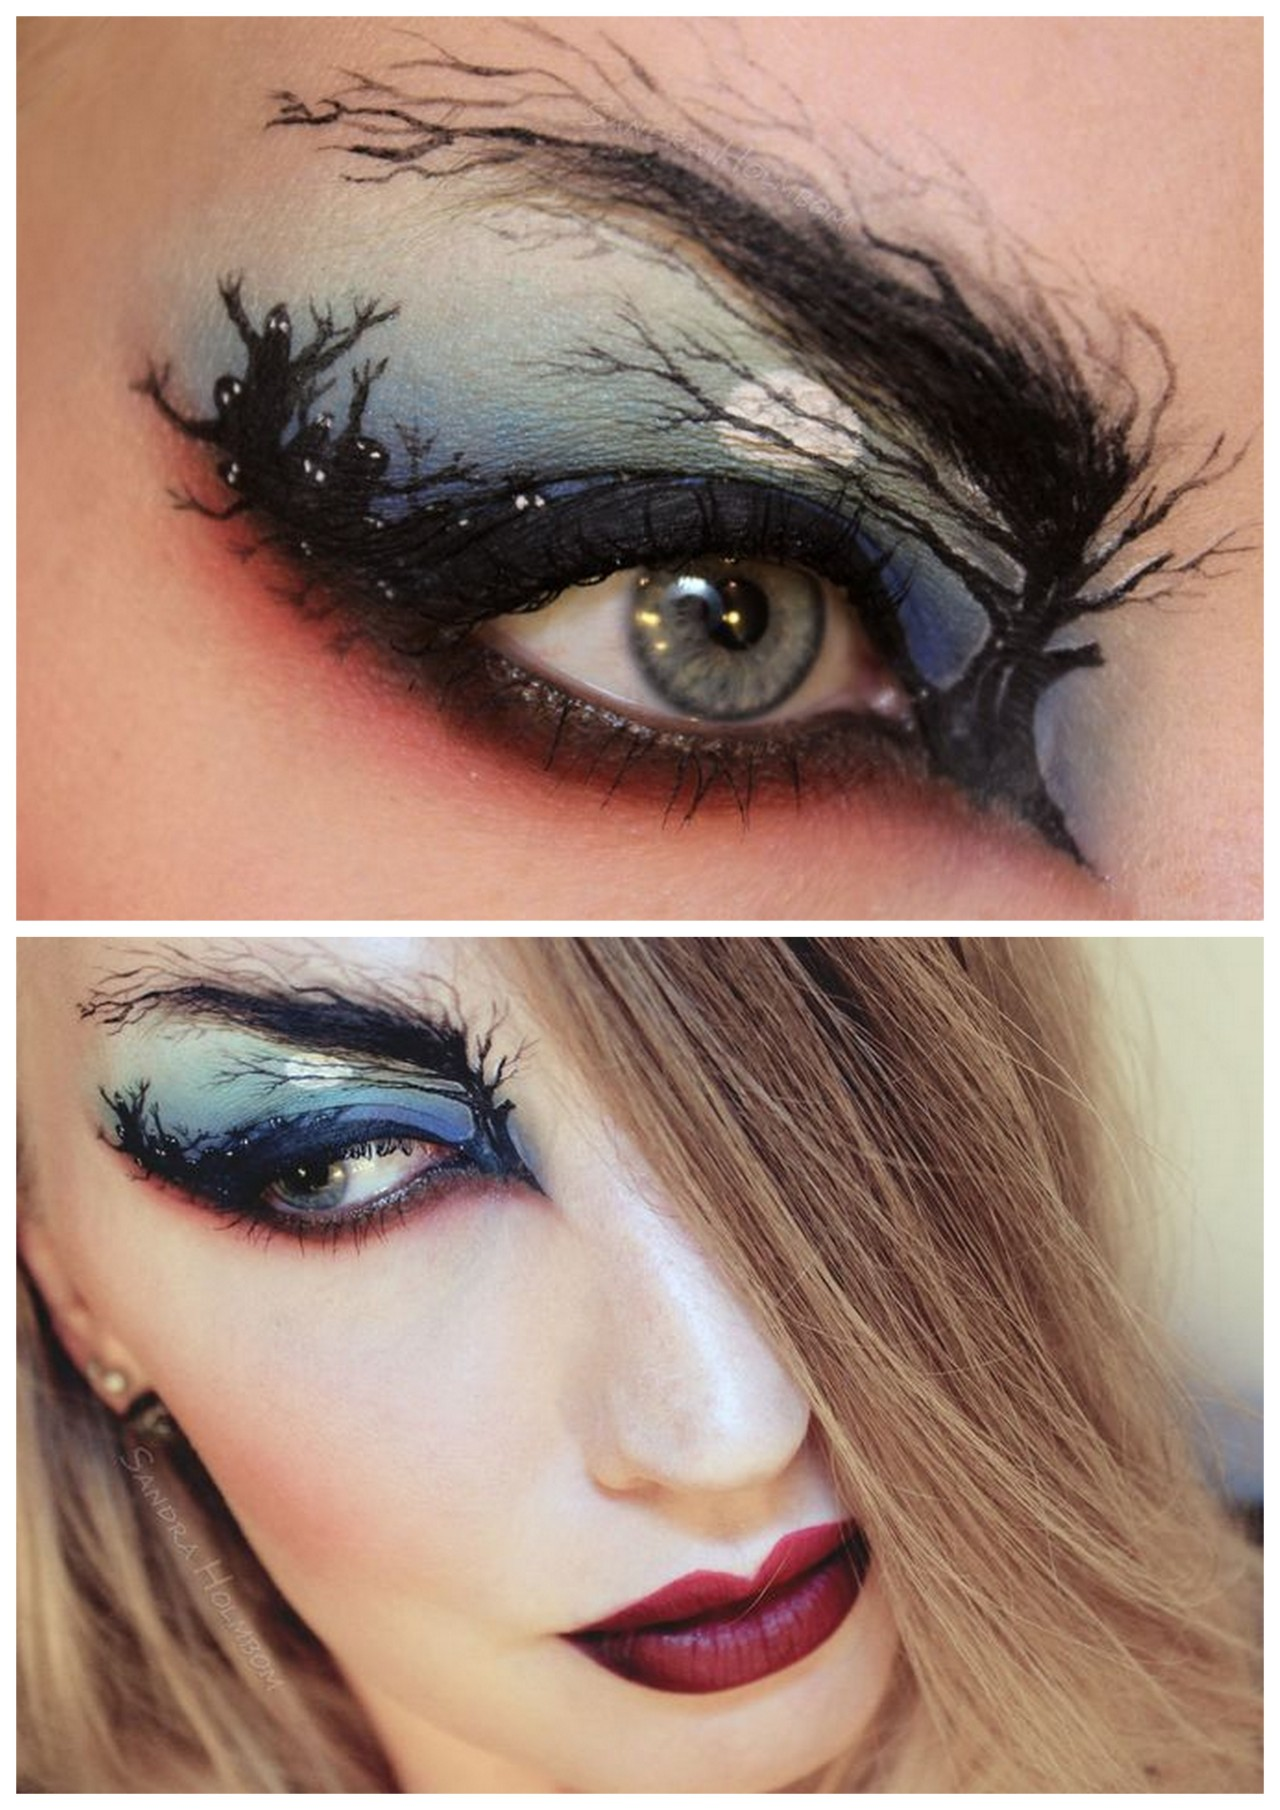 makeups0ul:  So sick !